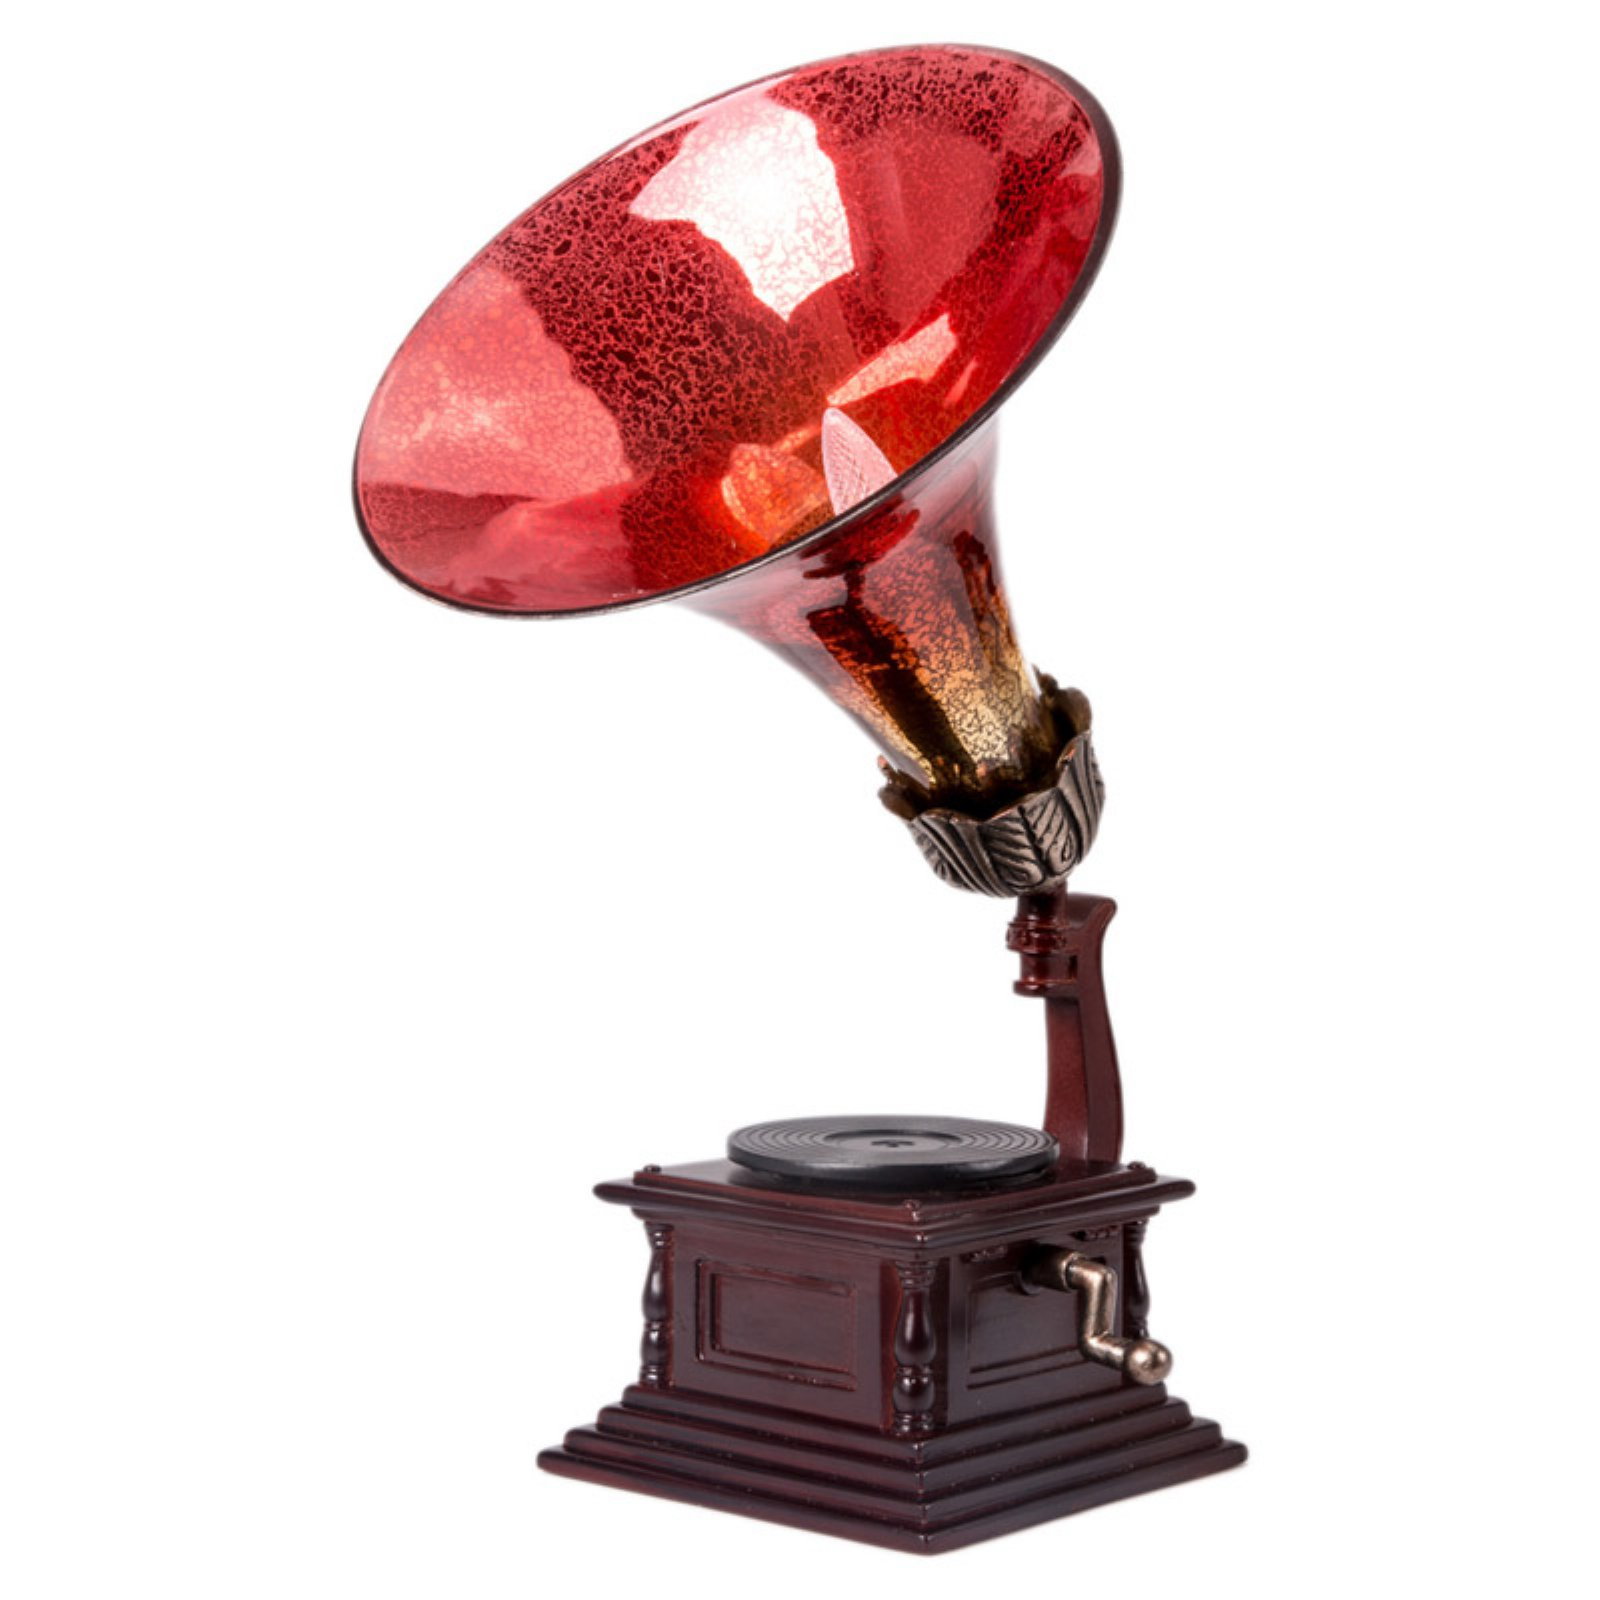 River of Goods 14502S Gramophone Table Lamp with Music Box